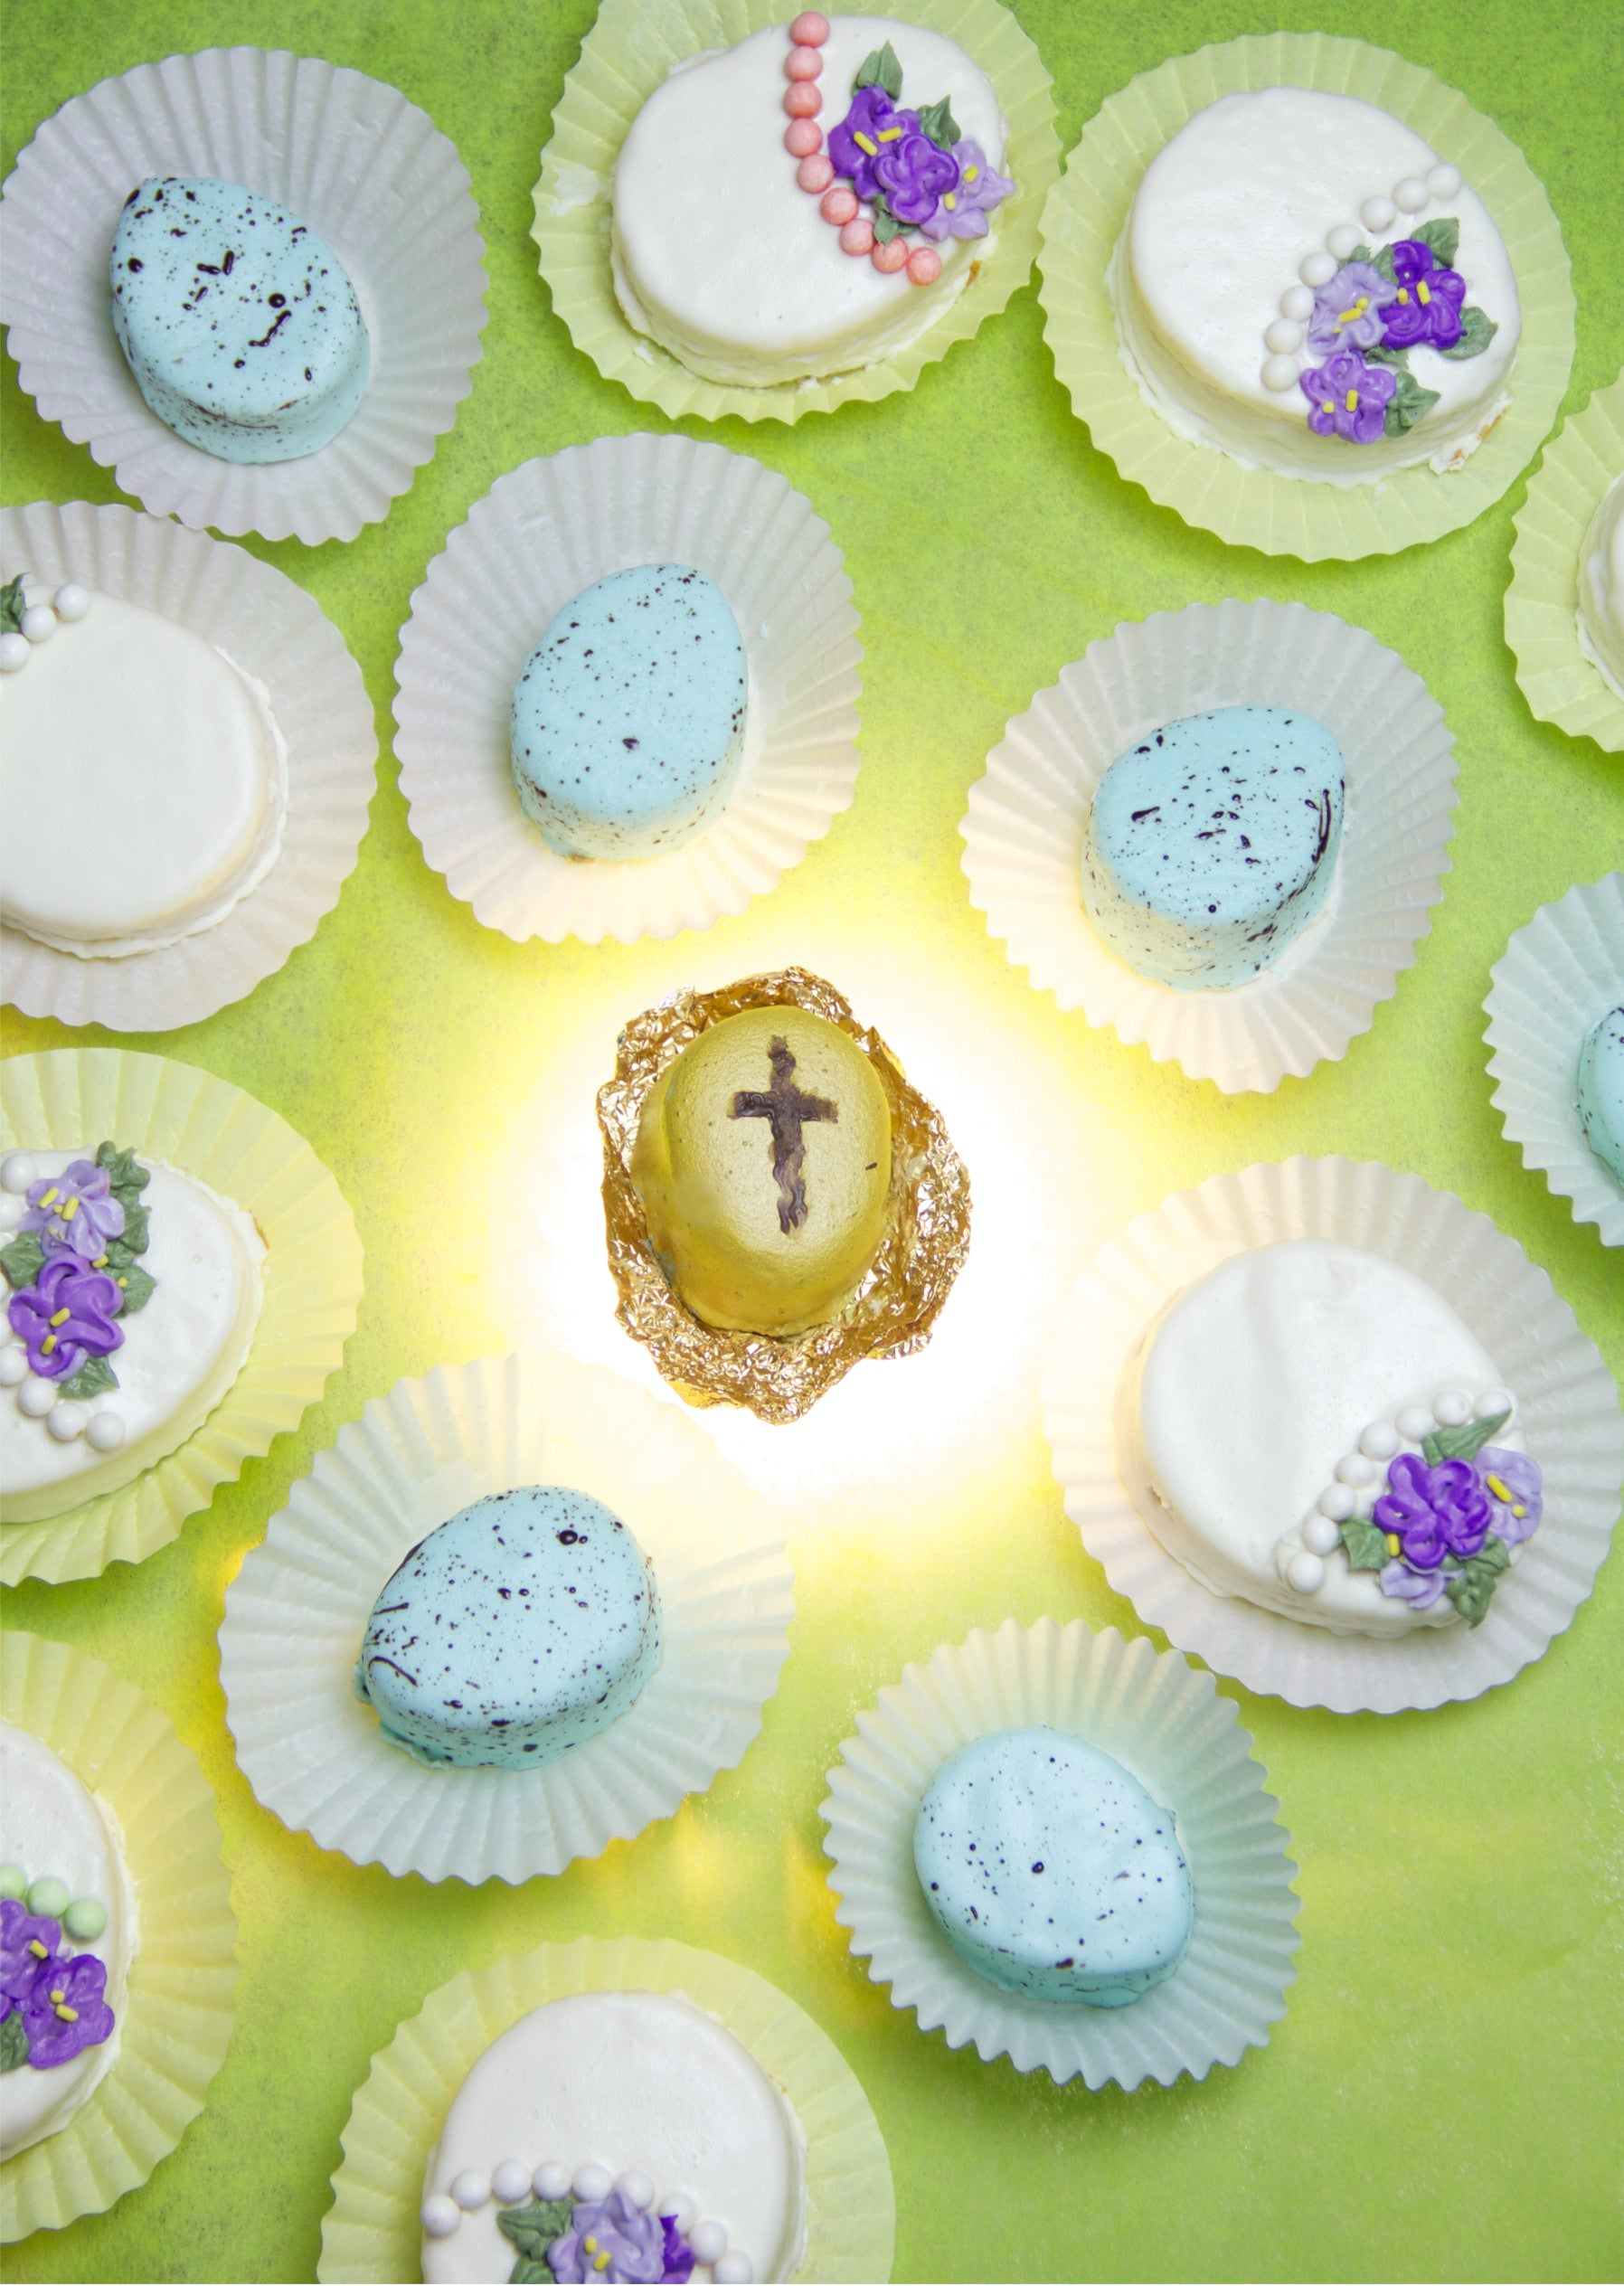 Jesus Rising From the Dead Easter Cakes